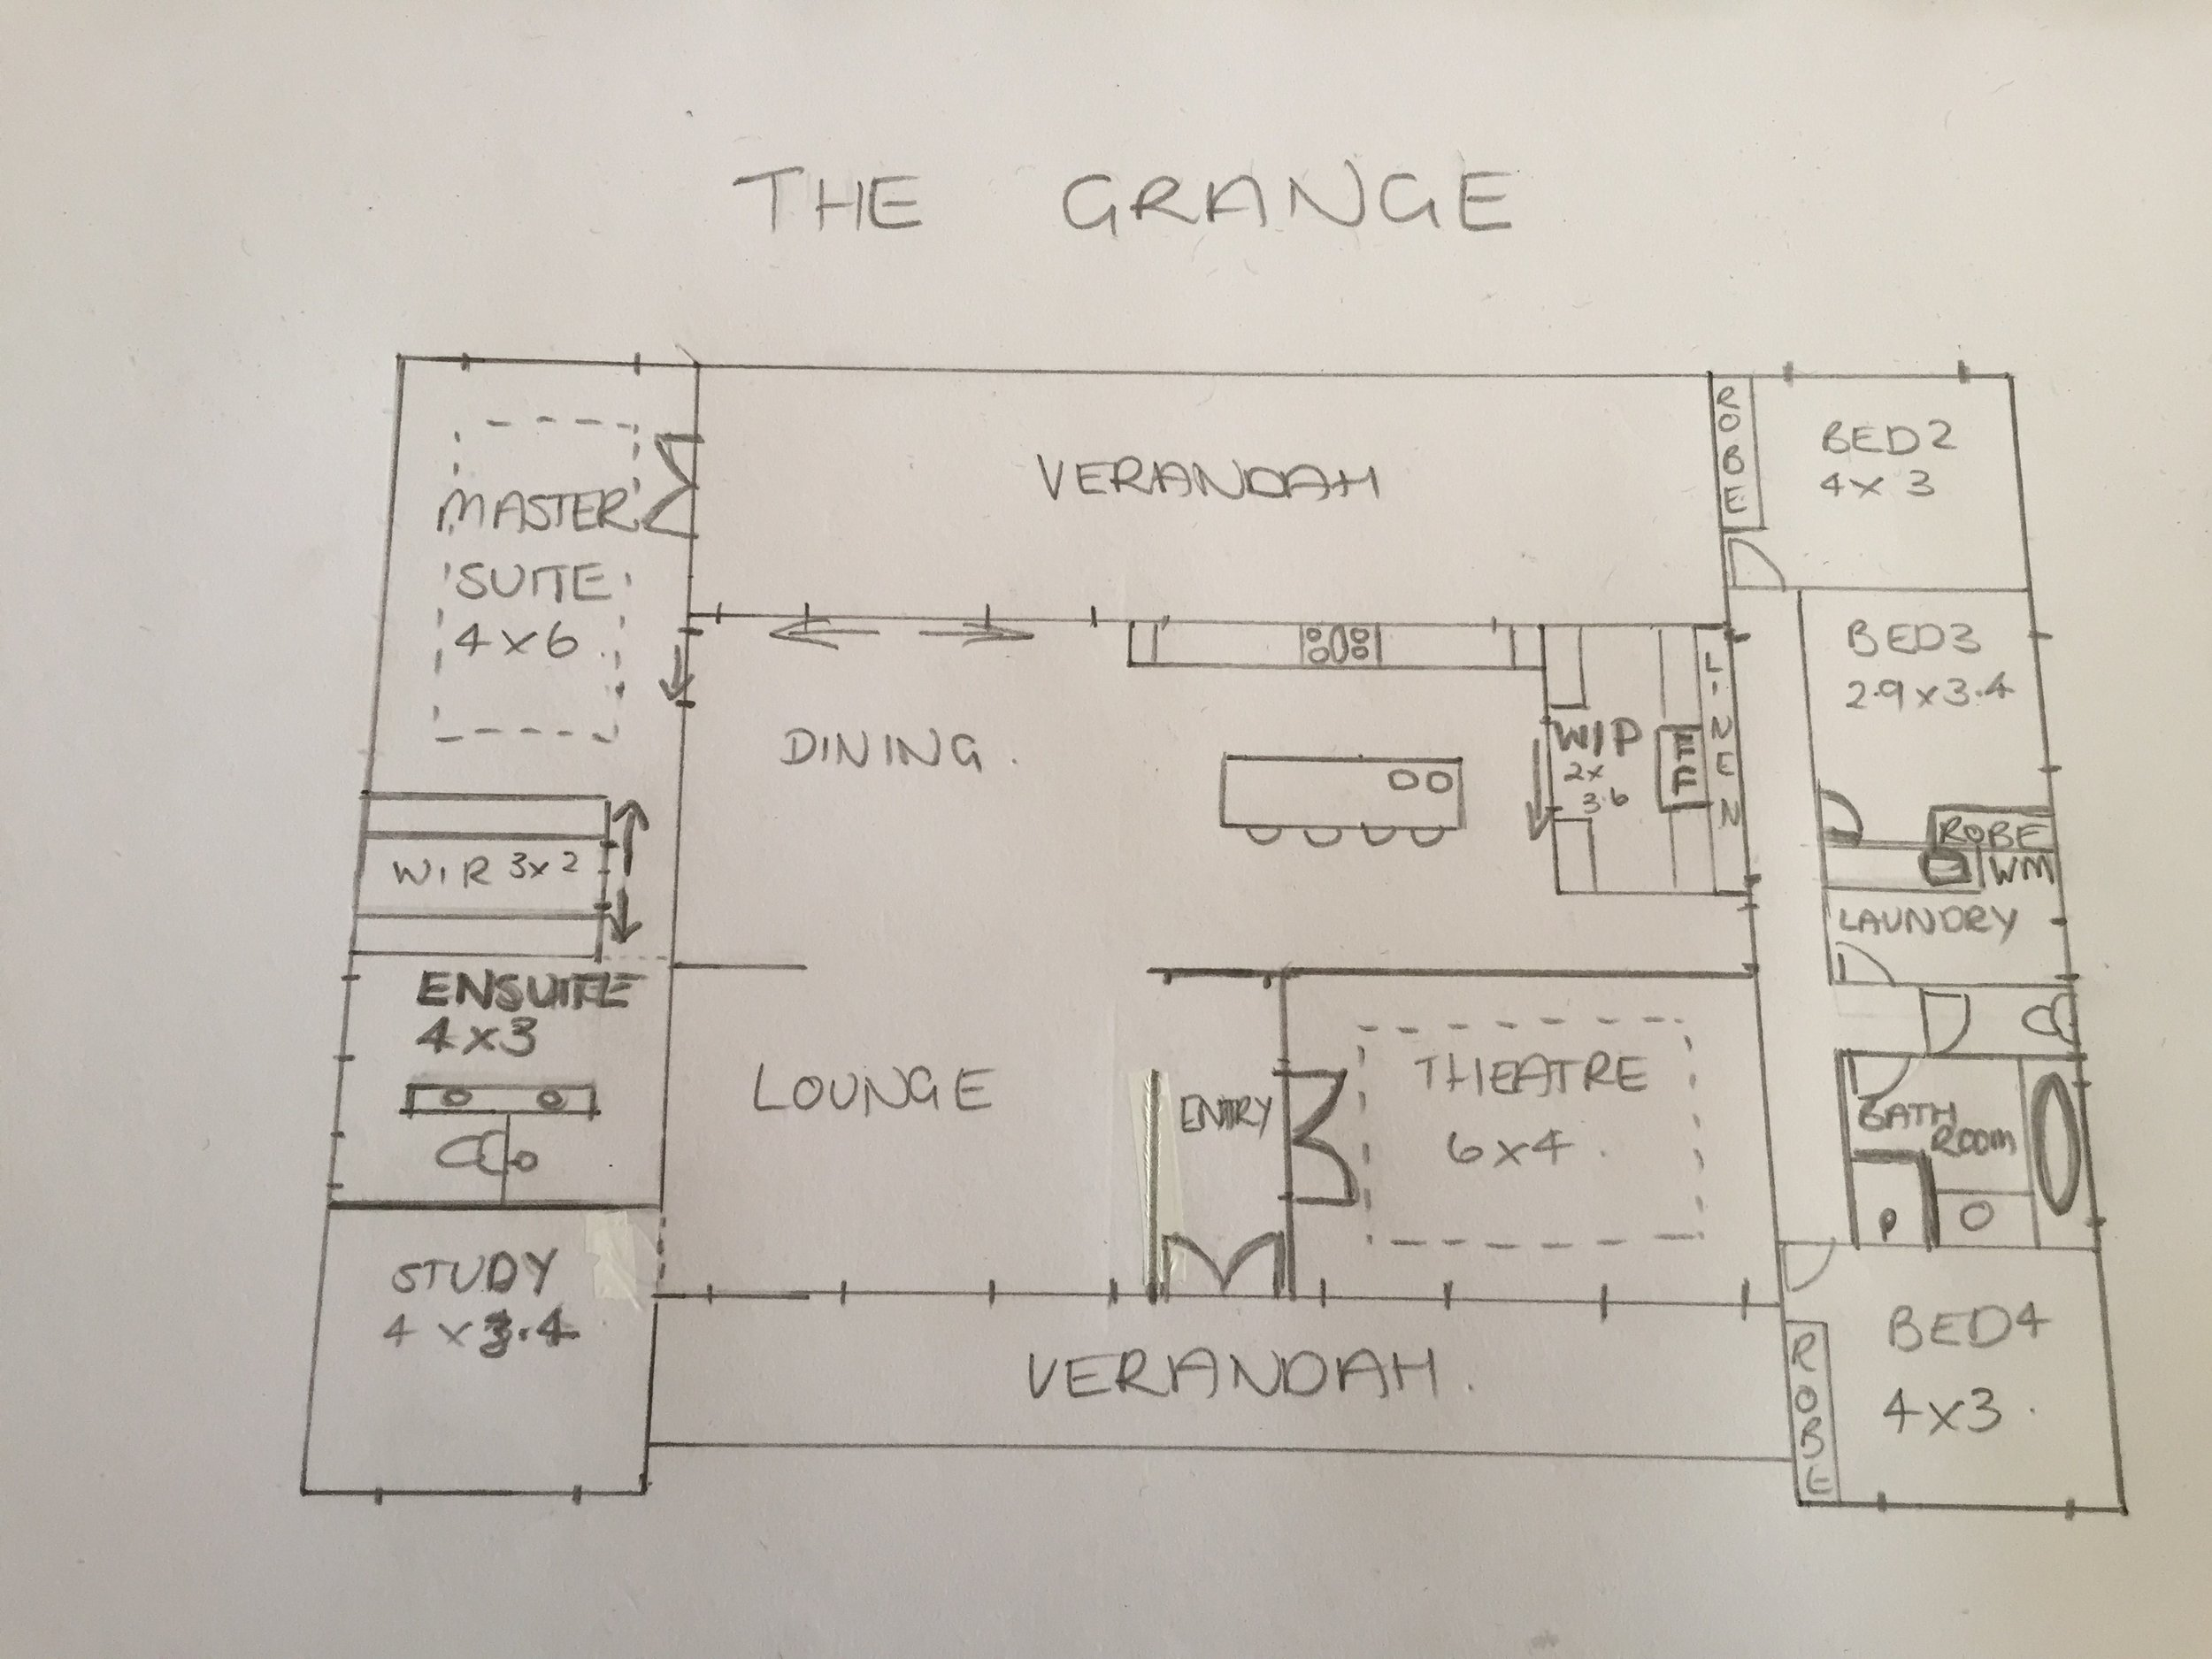 The winning design in The Grange floorplan personalisation category - Tracy Coid